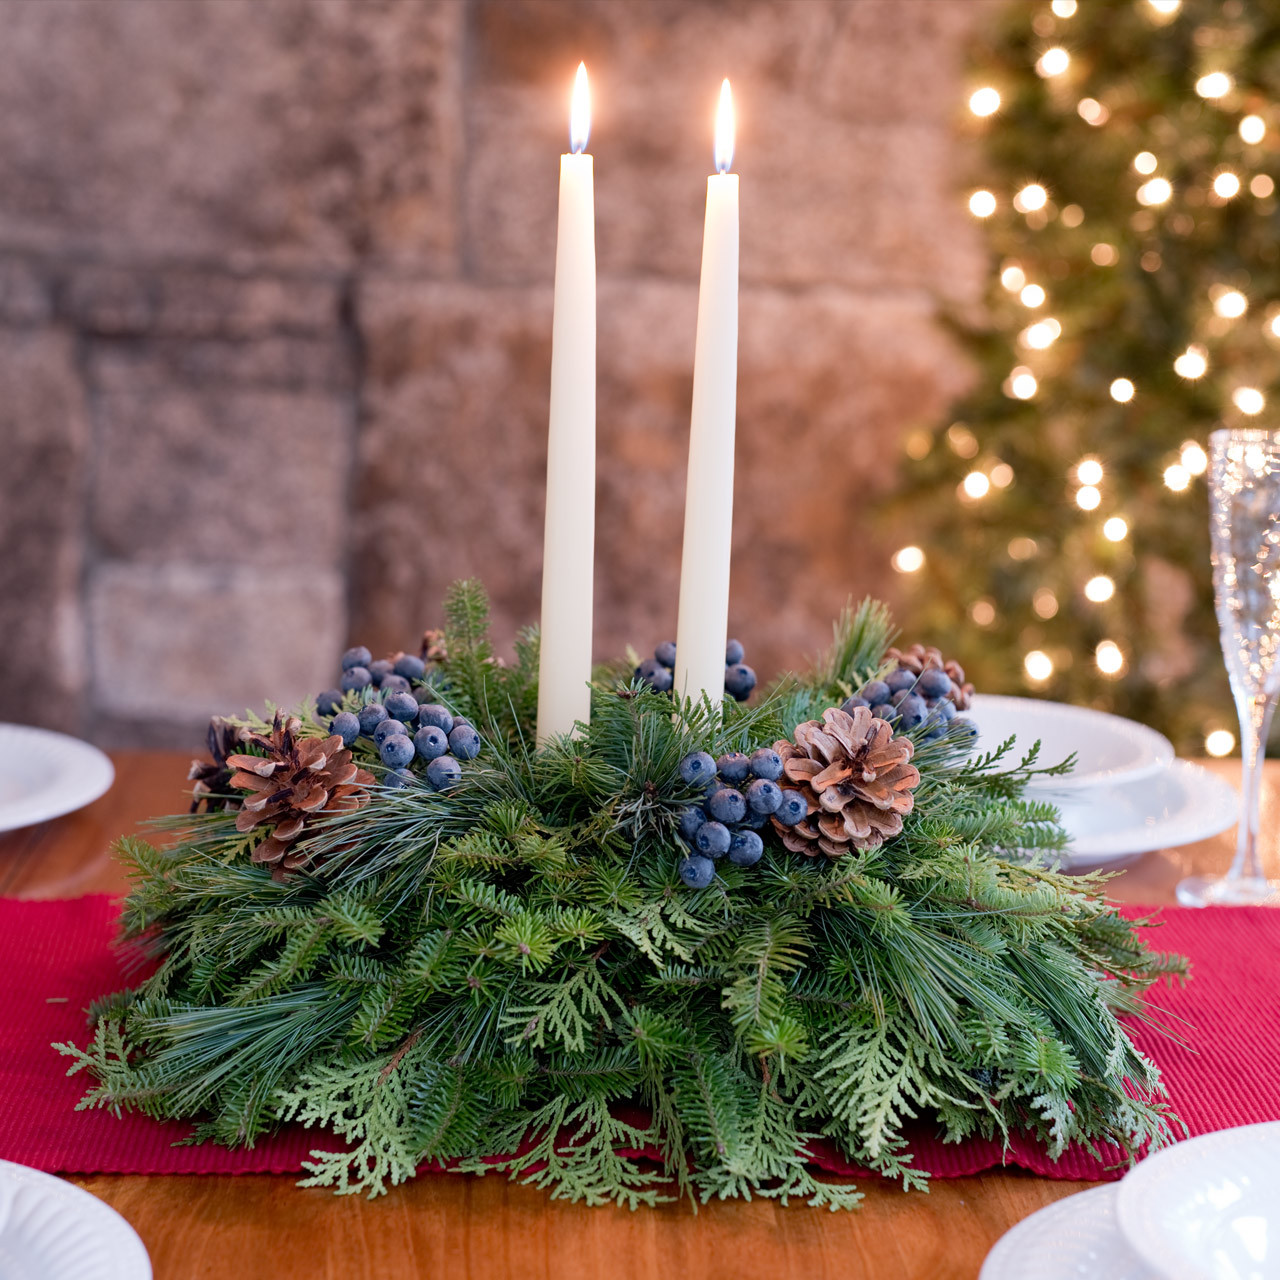 Blueberry Christmas Table Centerpieces With Pine Cones Faux Blueberries And Ivory Candles